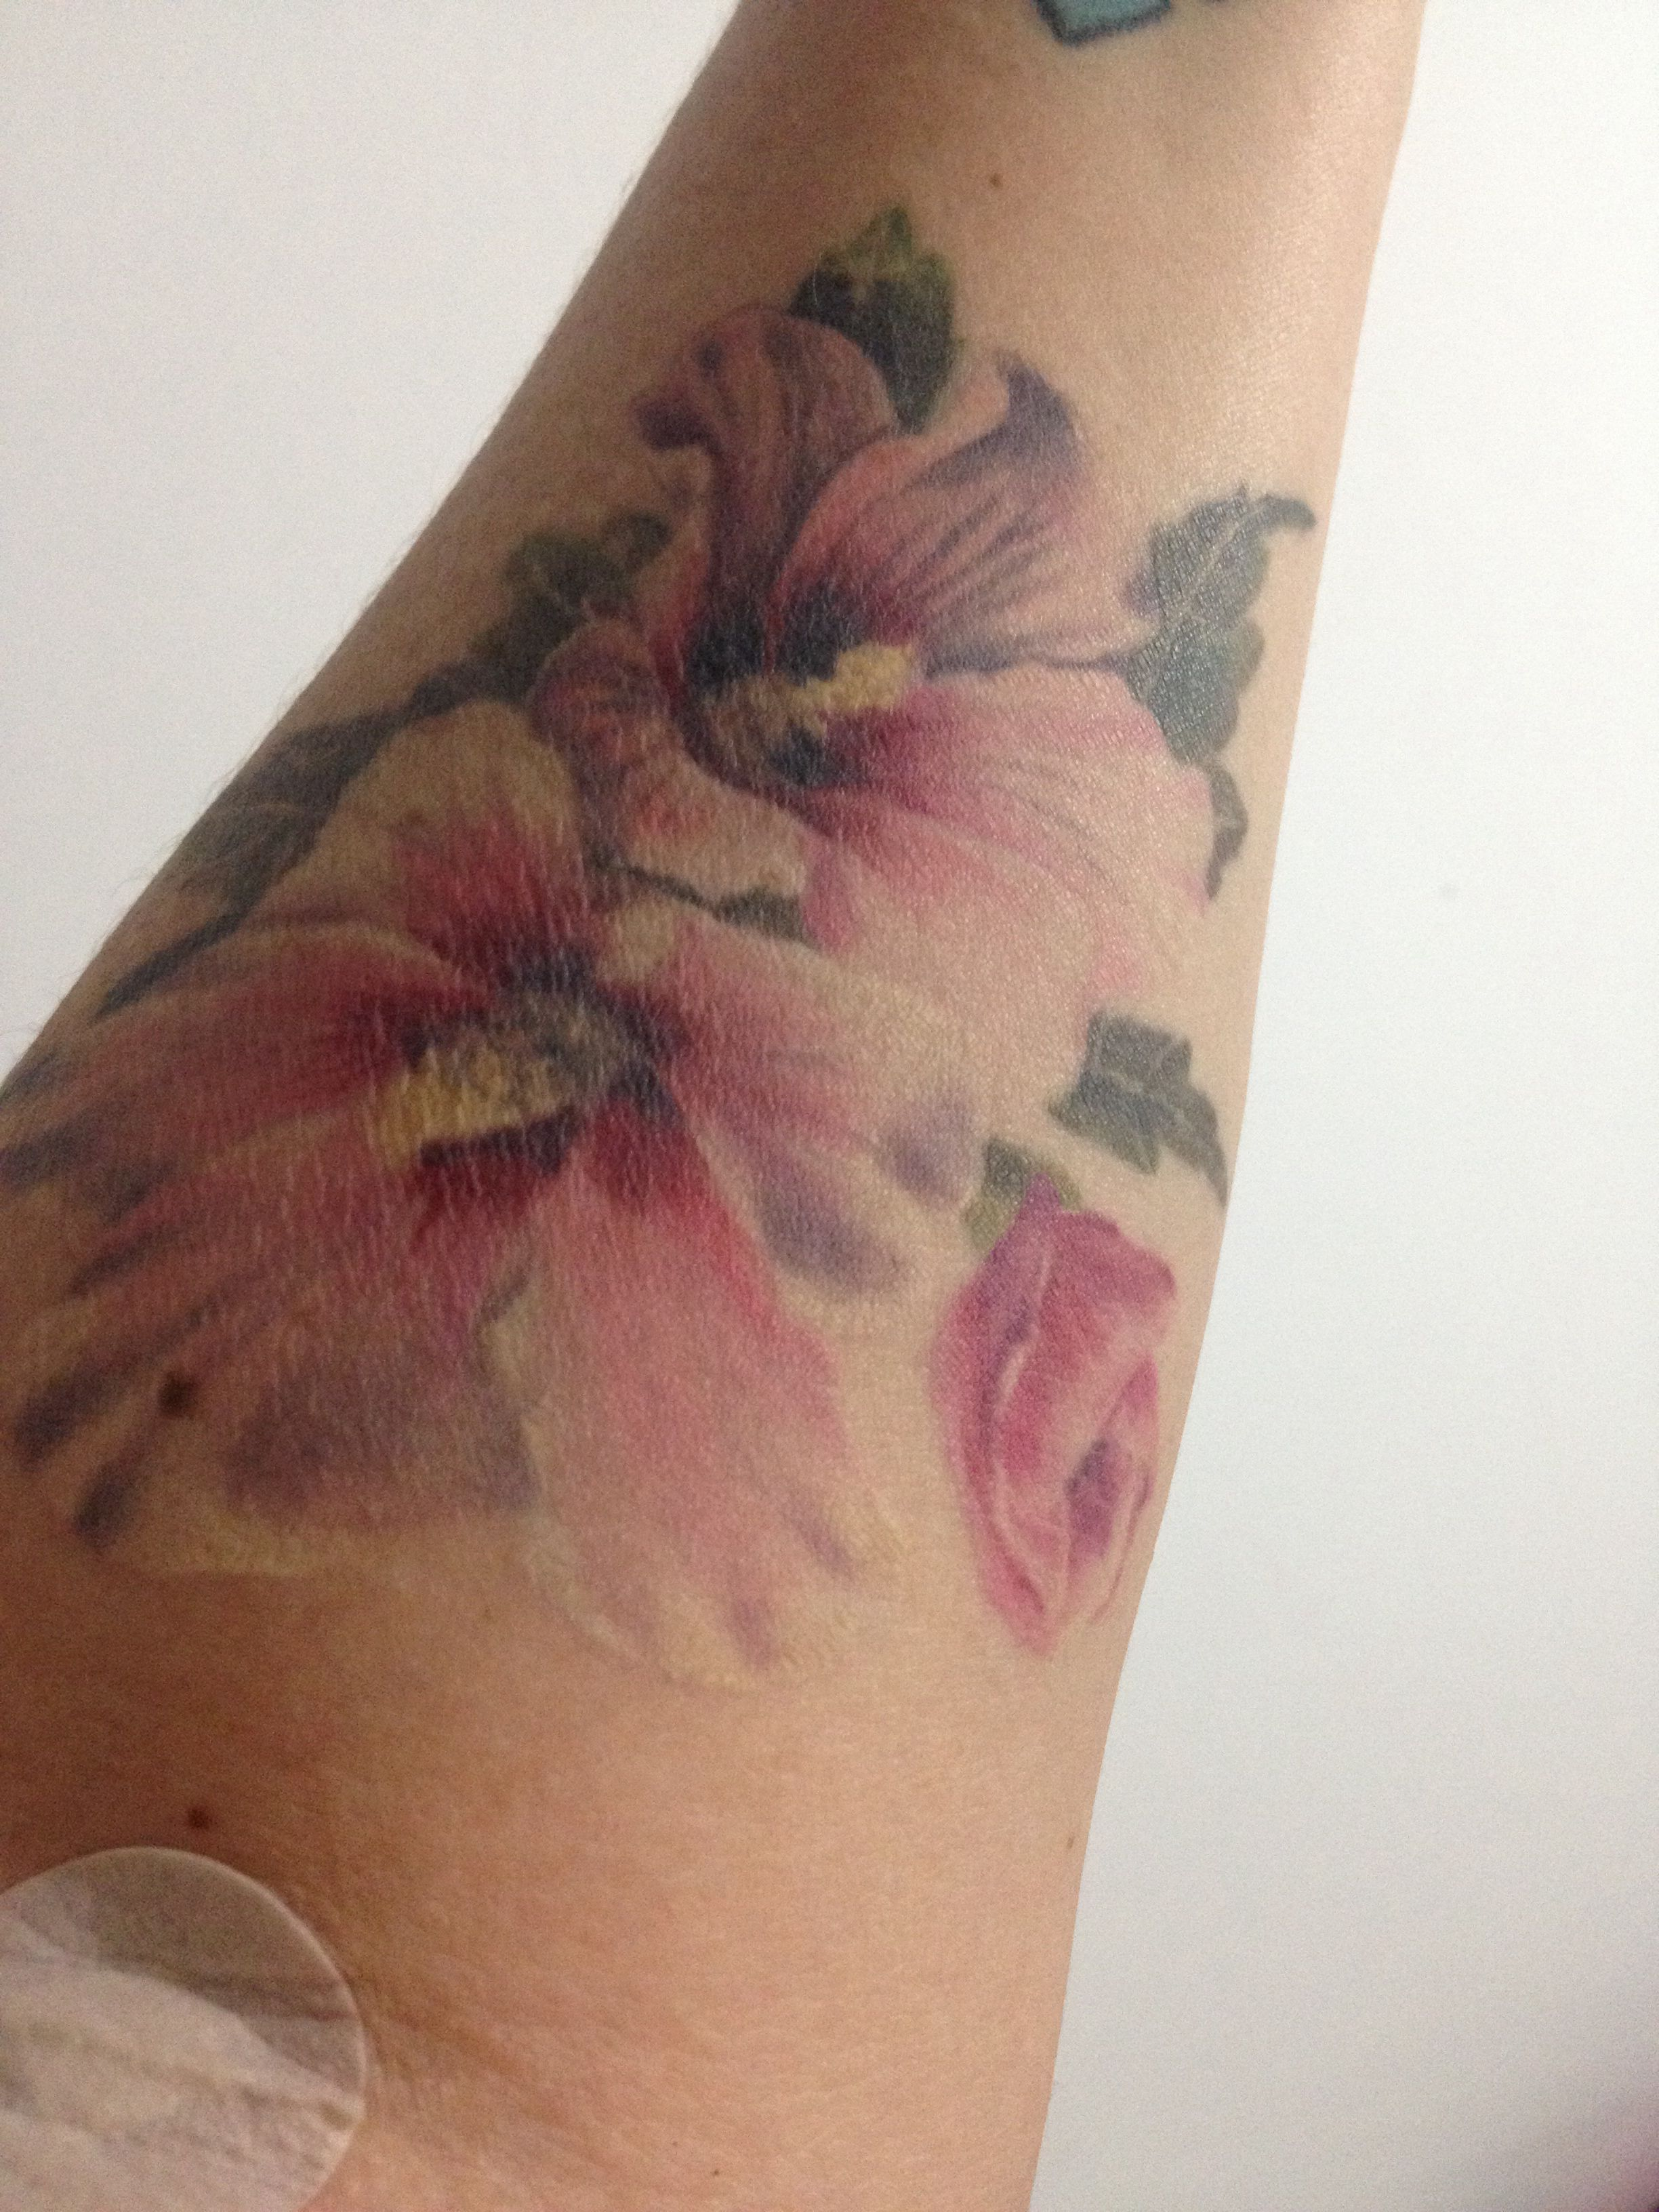 e7c619c81 Rose of Sharon Rose Of Sharon, Body Modifications, Watercolor Tattoo,  Tatting, Skin